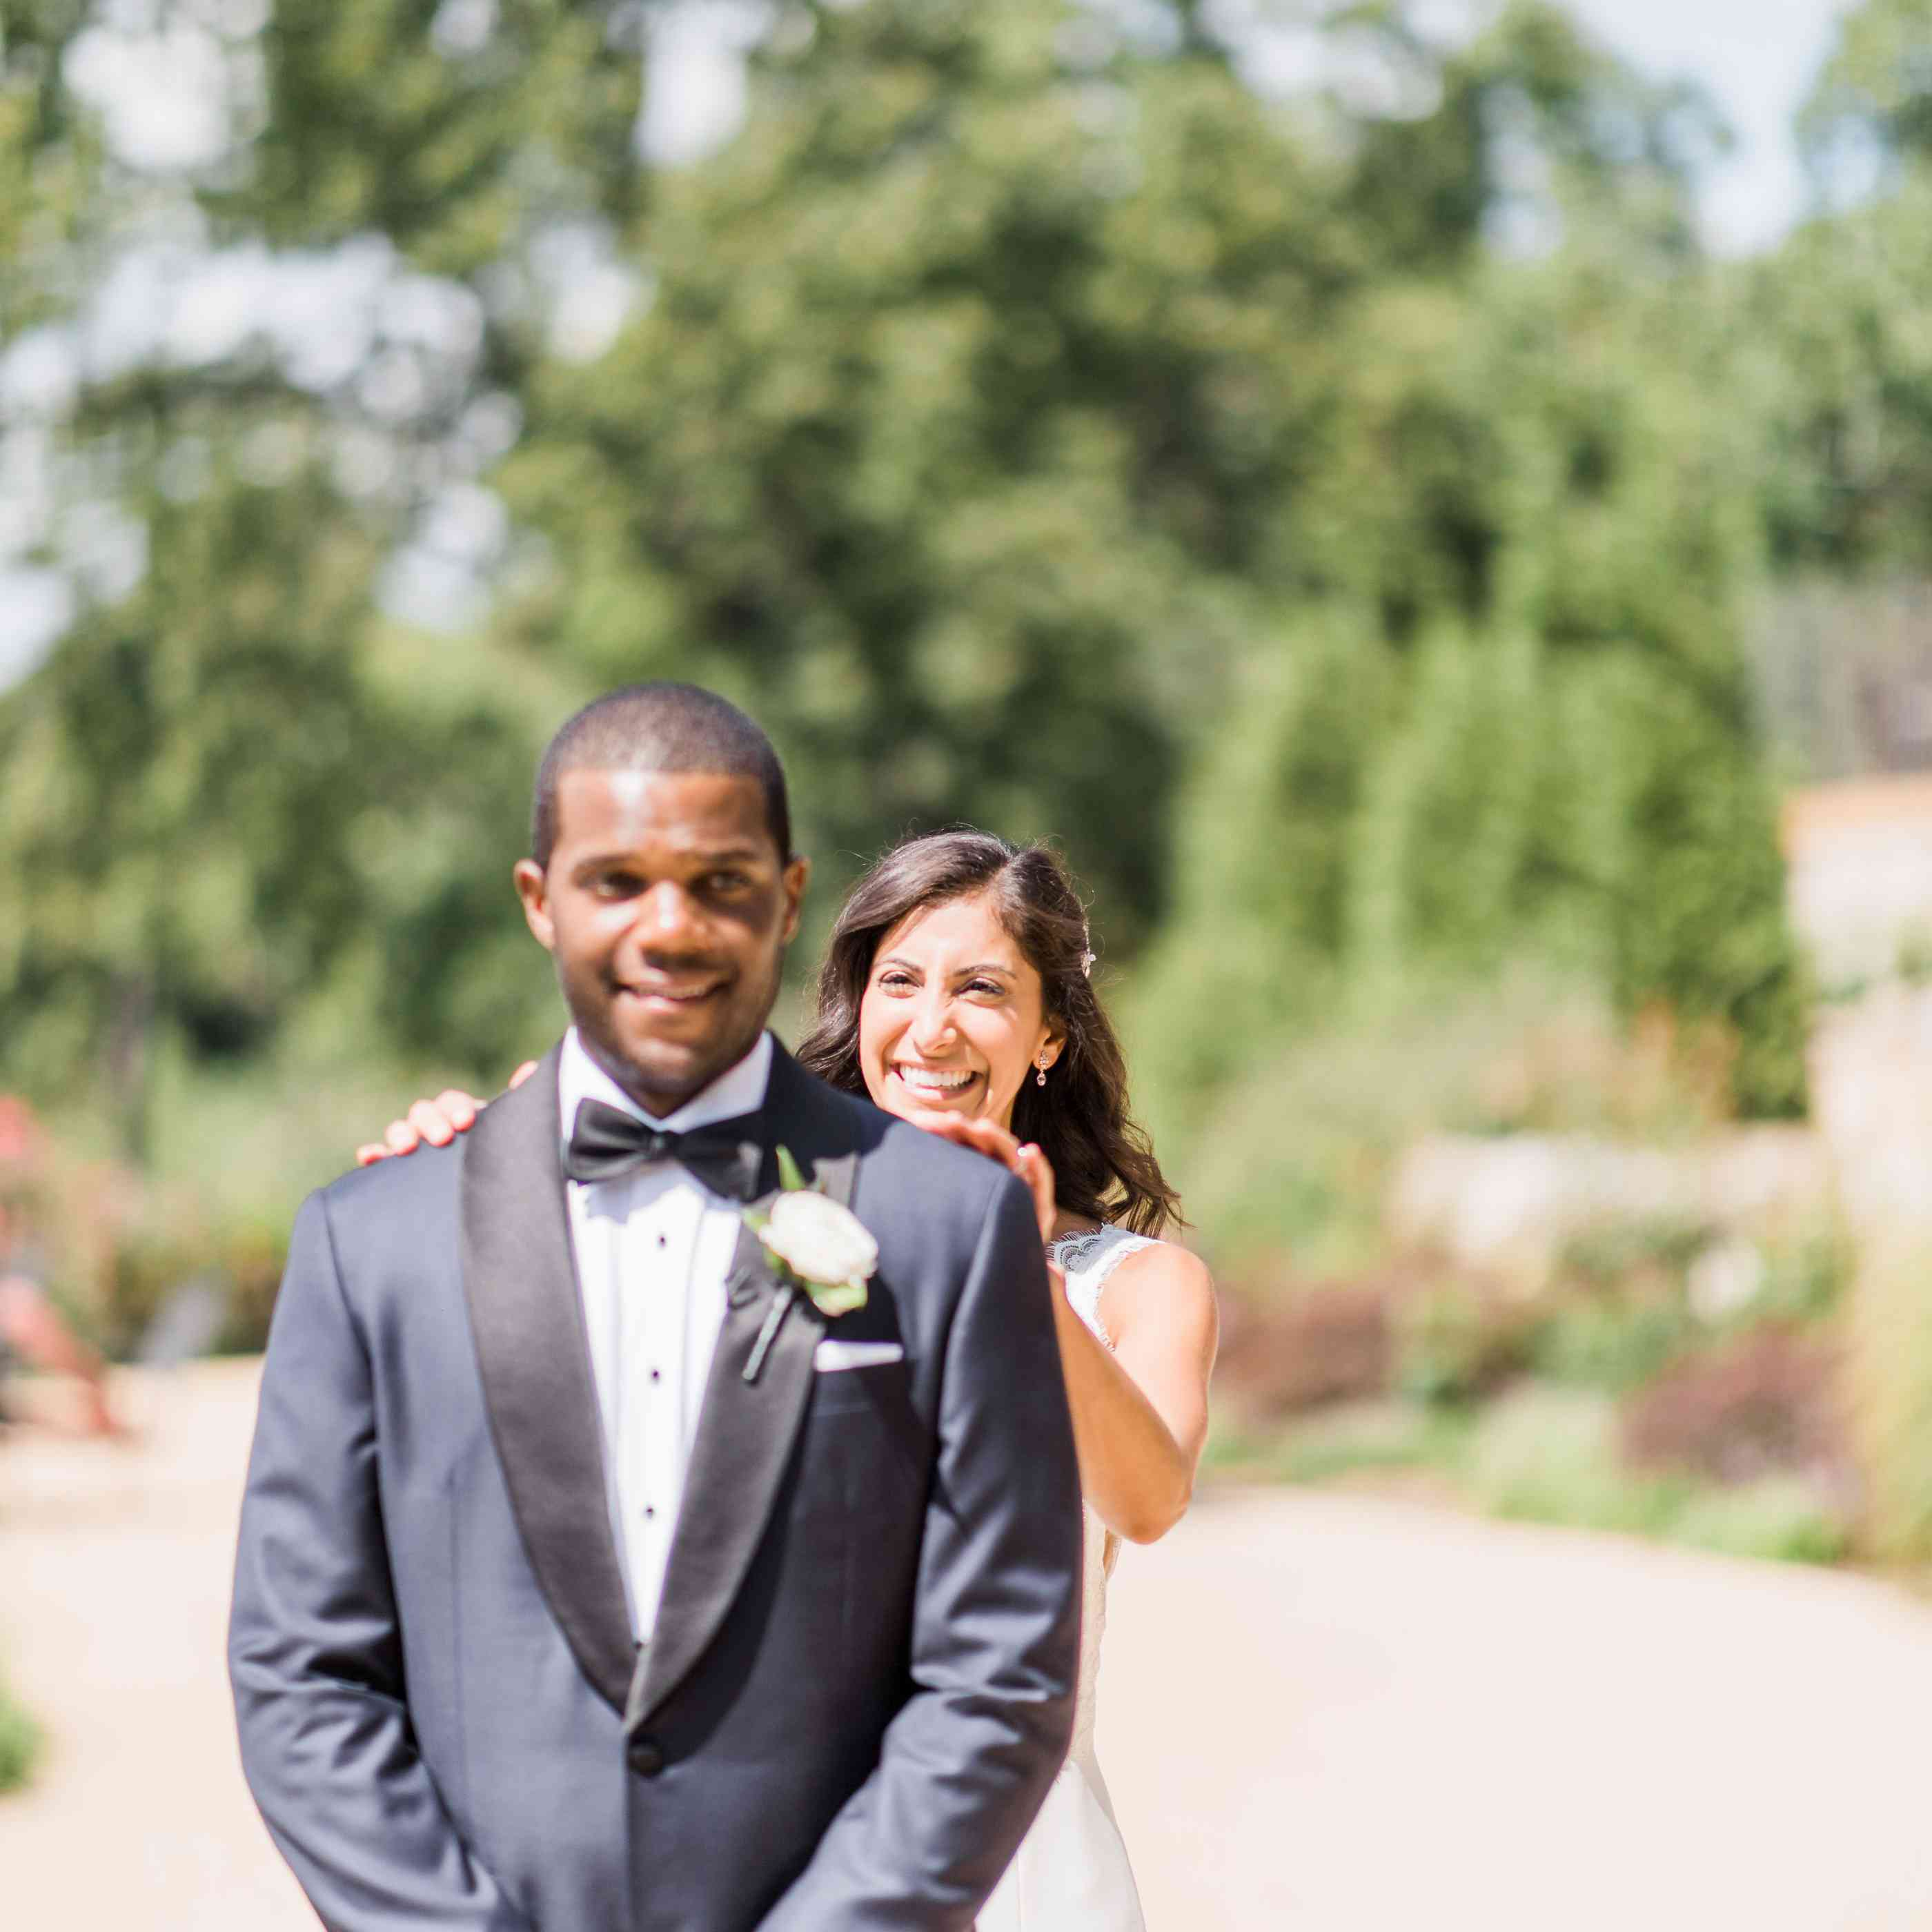 How To Pose For Wedding Photos Tips And Ideas